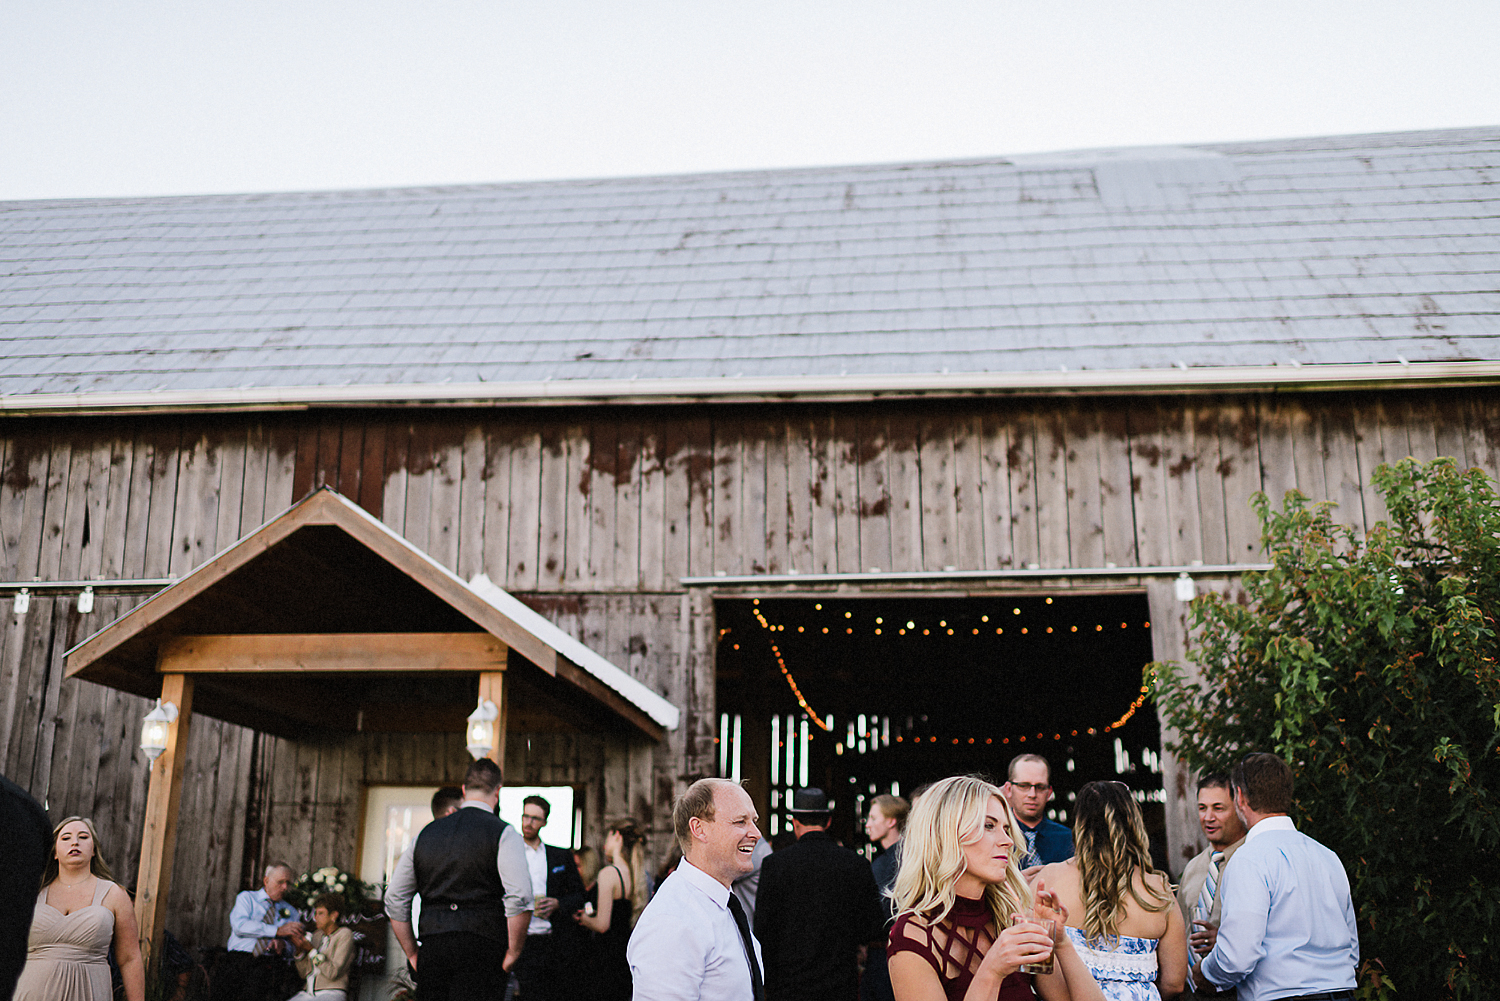 dowswell-barn-wedding-beaverton-best-wedding-photographers-toronto-moody-style-candid-photojounalistic-approach-intimate-vintage-farm-wedding-Farm-wedding-bridal-party-groomsmen-candid-guests-cocktail-hour.jpg